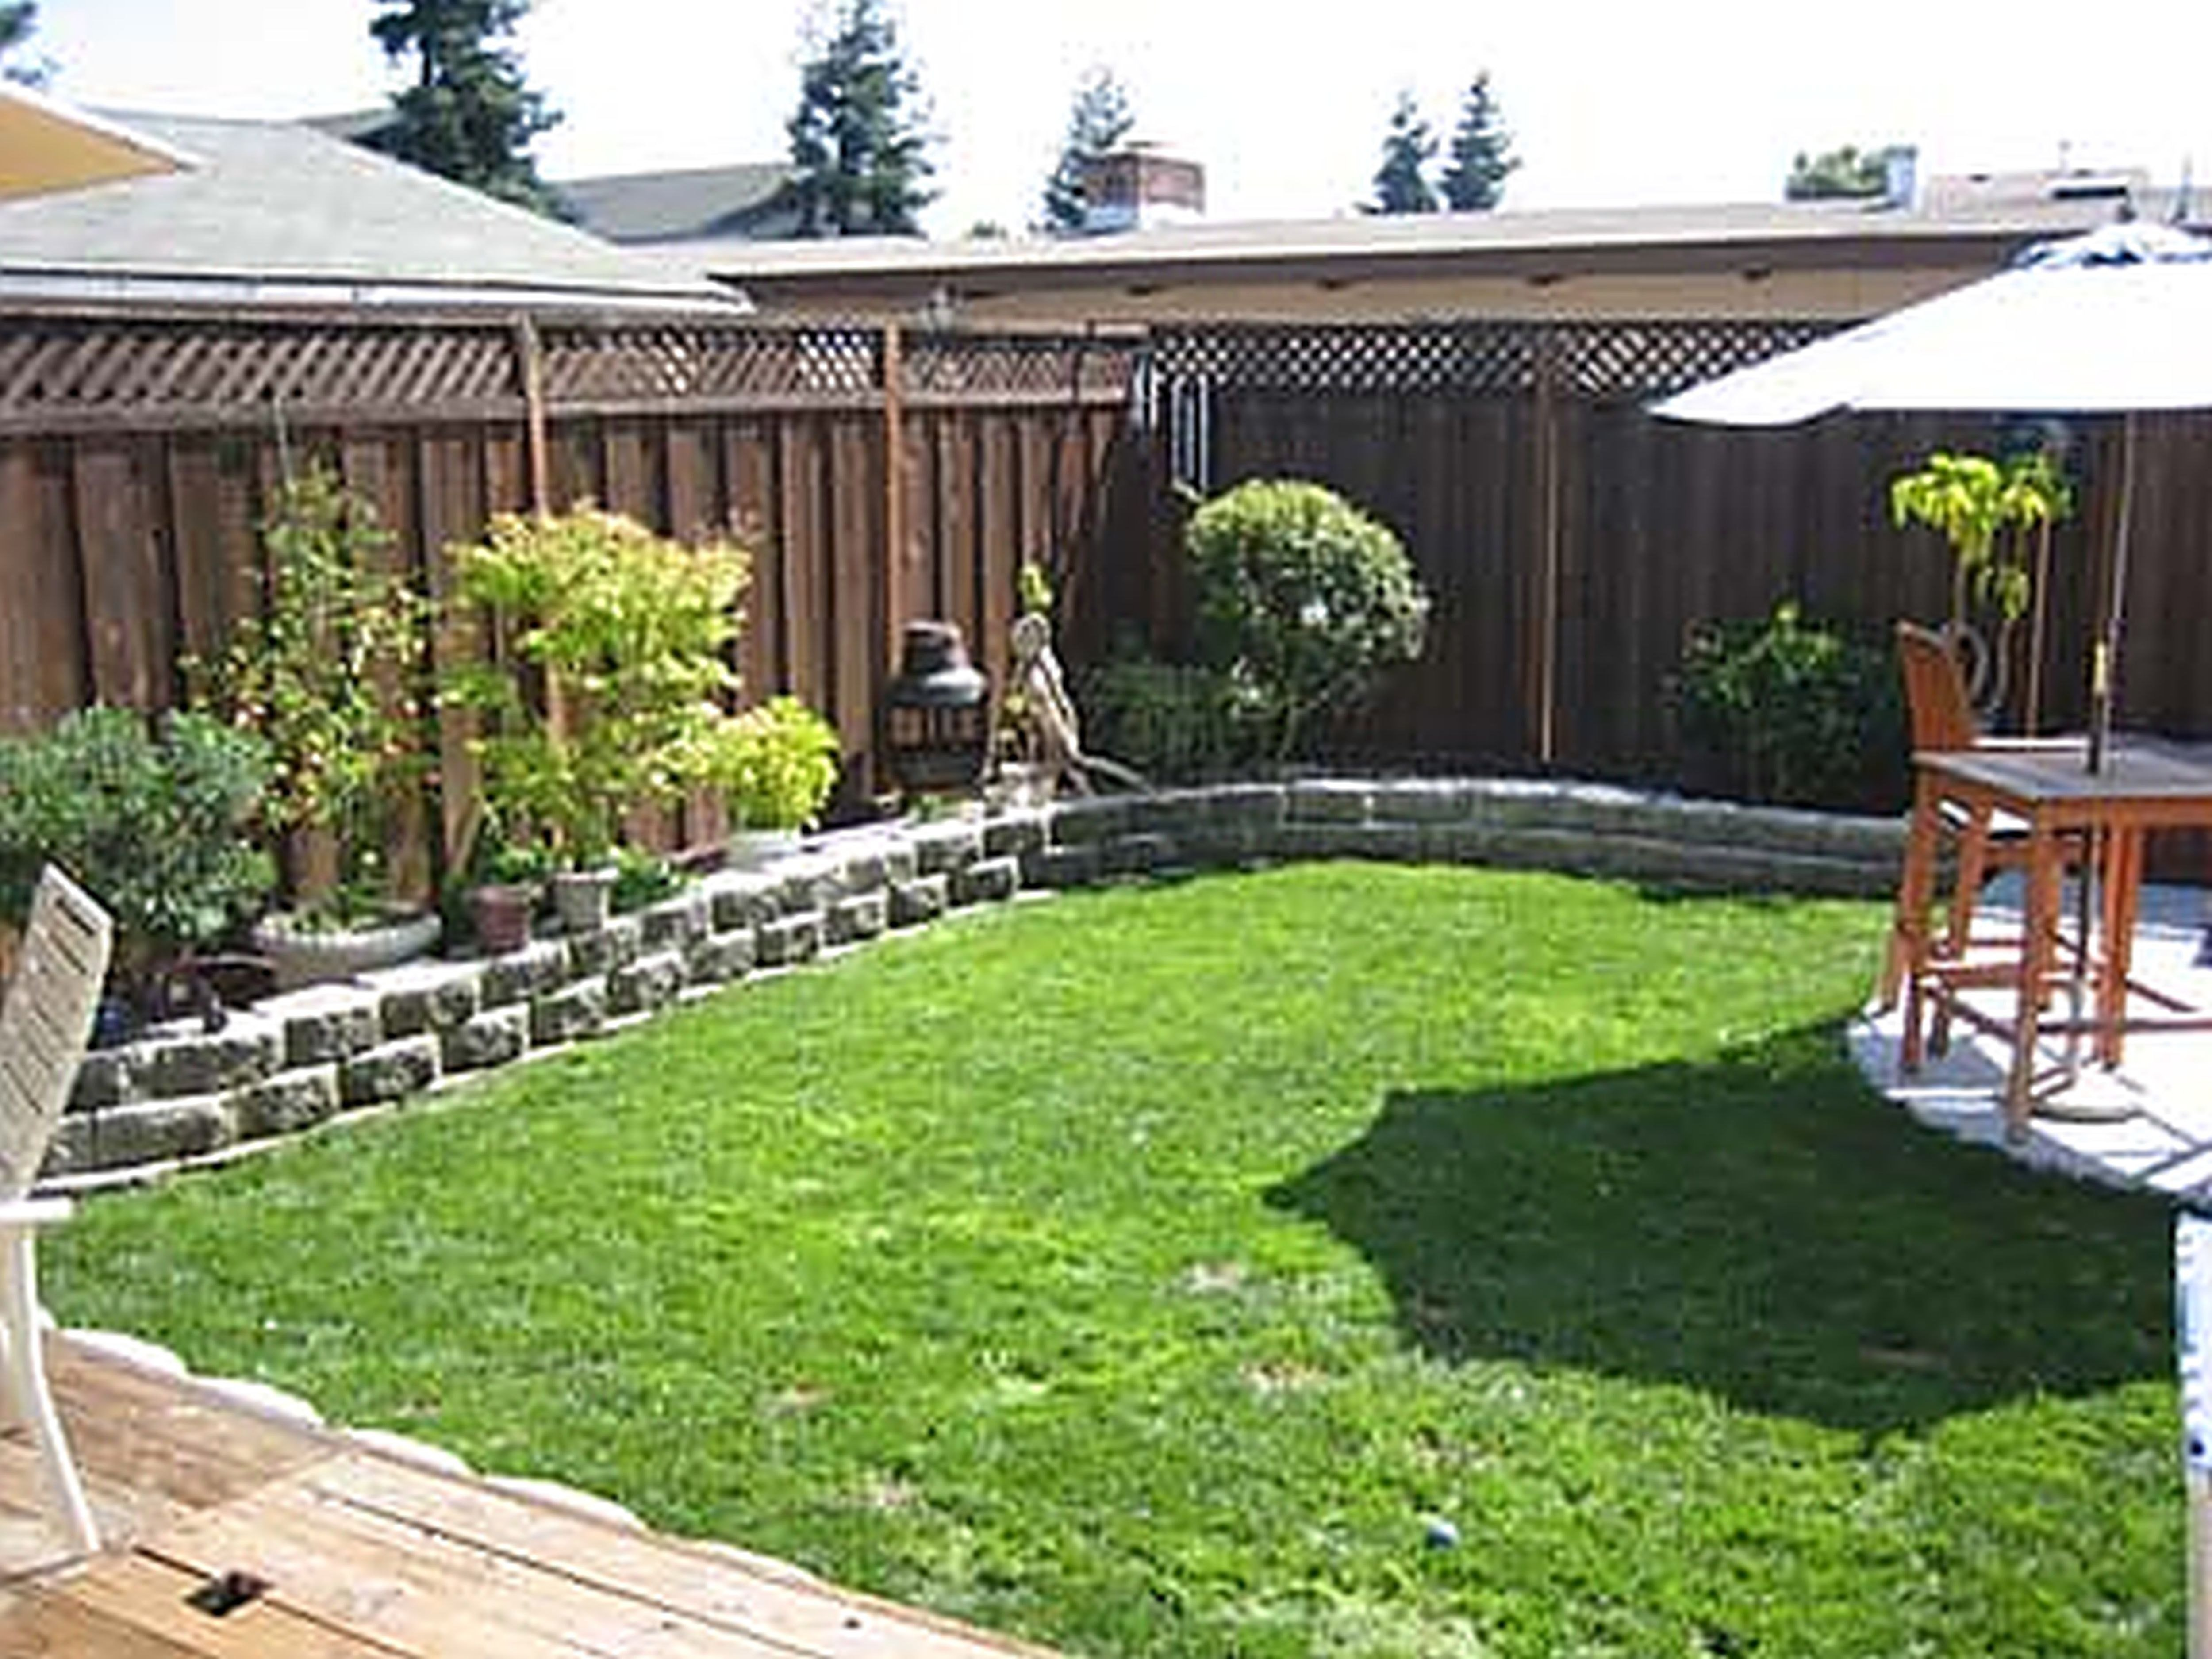 10 Unique Backyard Patio Ideas On A Budget backyard design ideas on a bud stunning astounding cheap from 2021